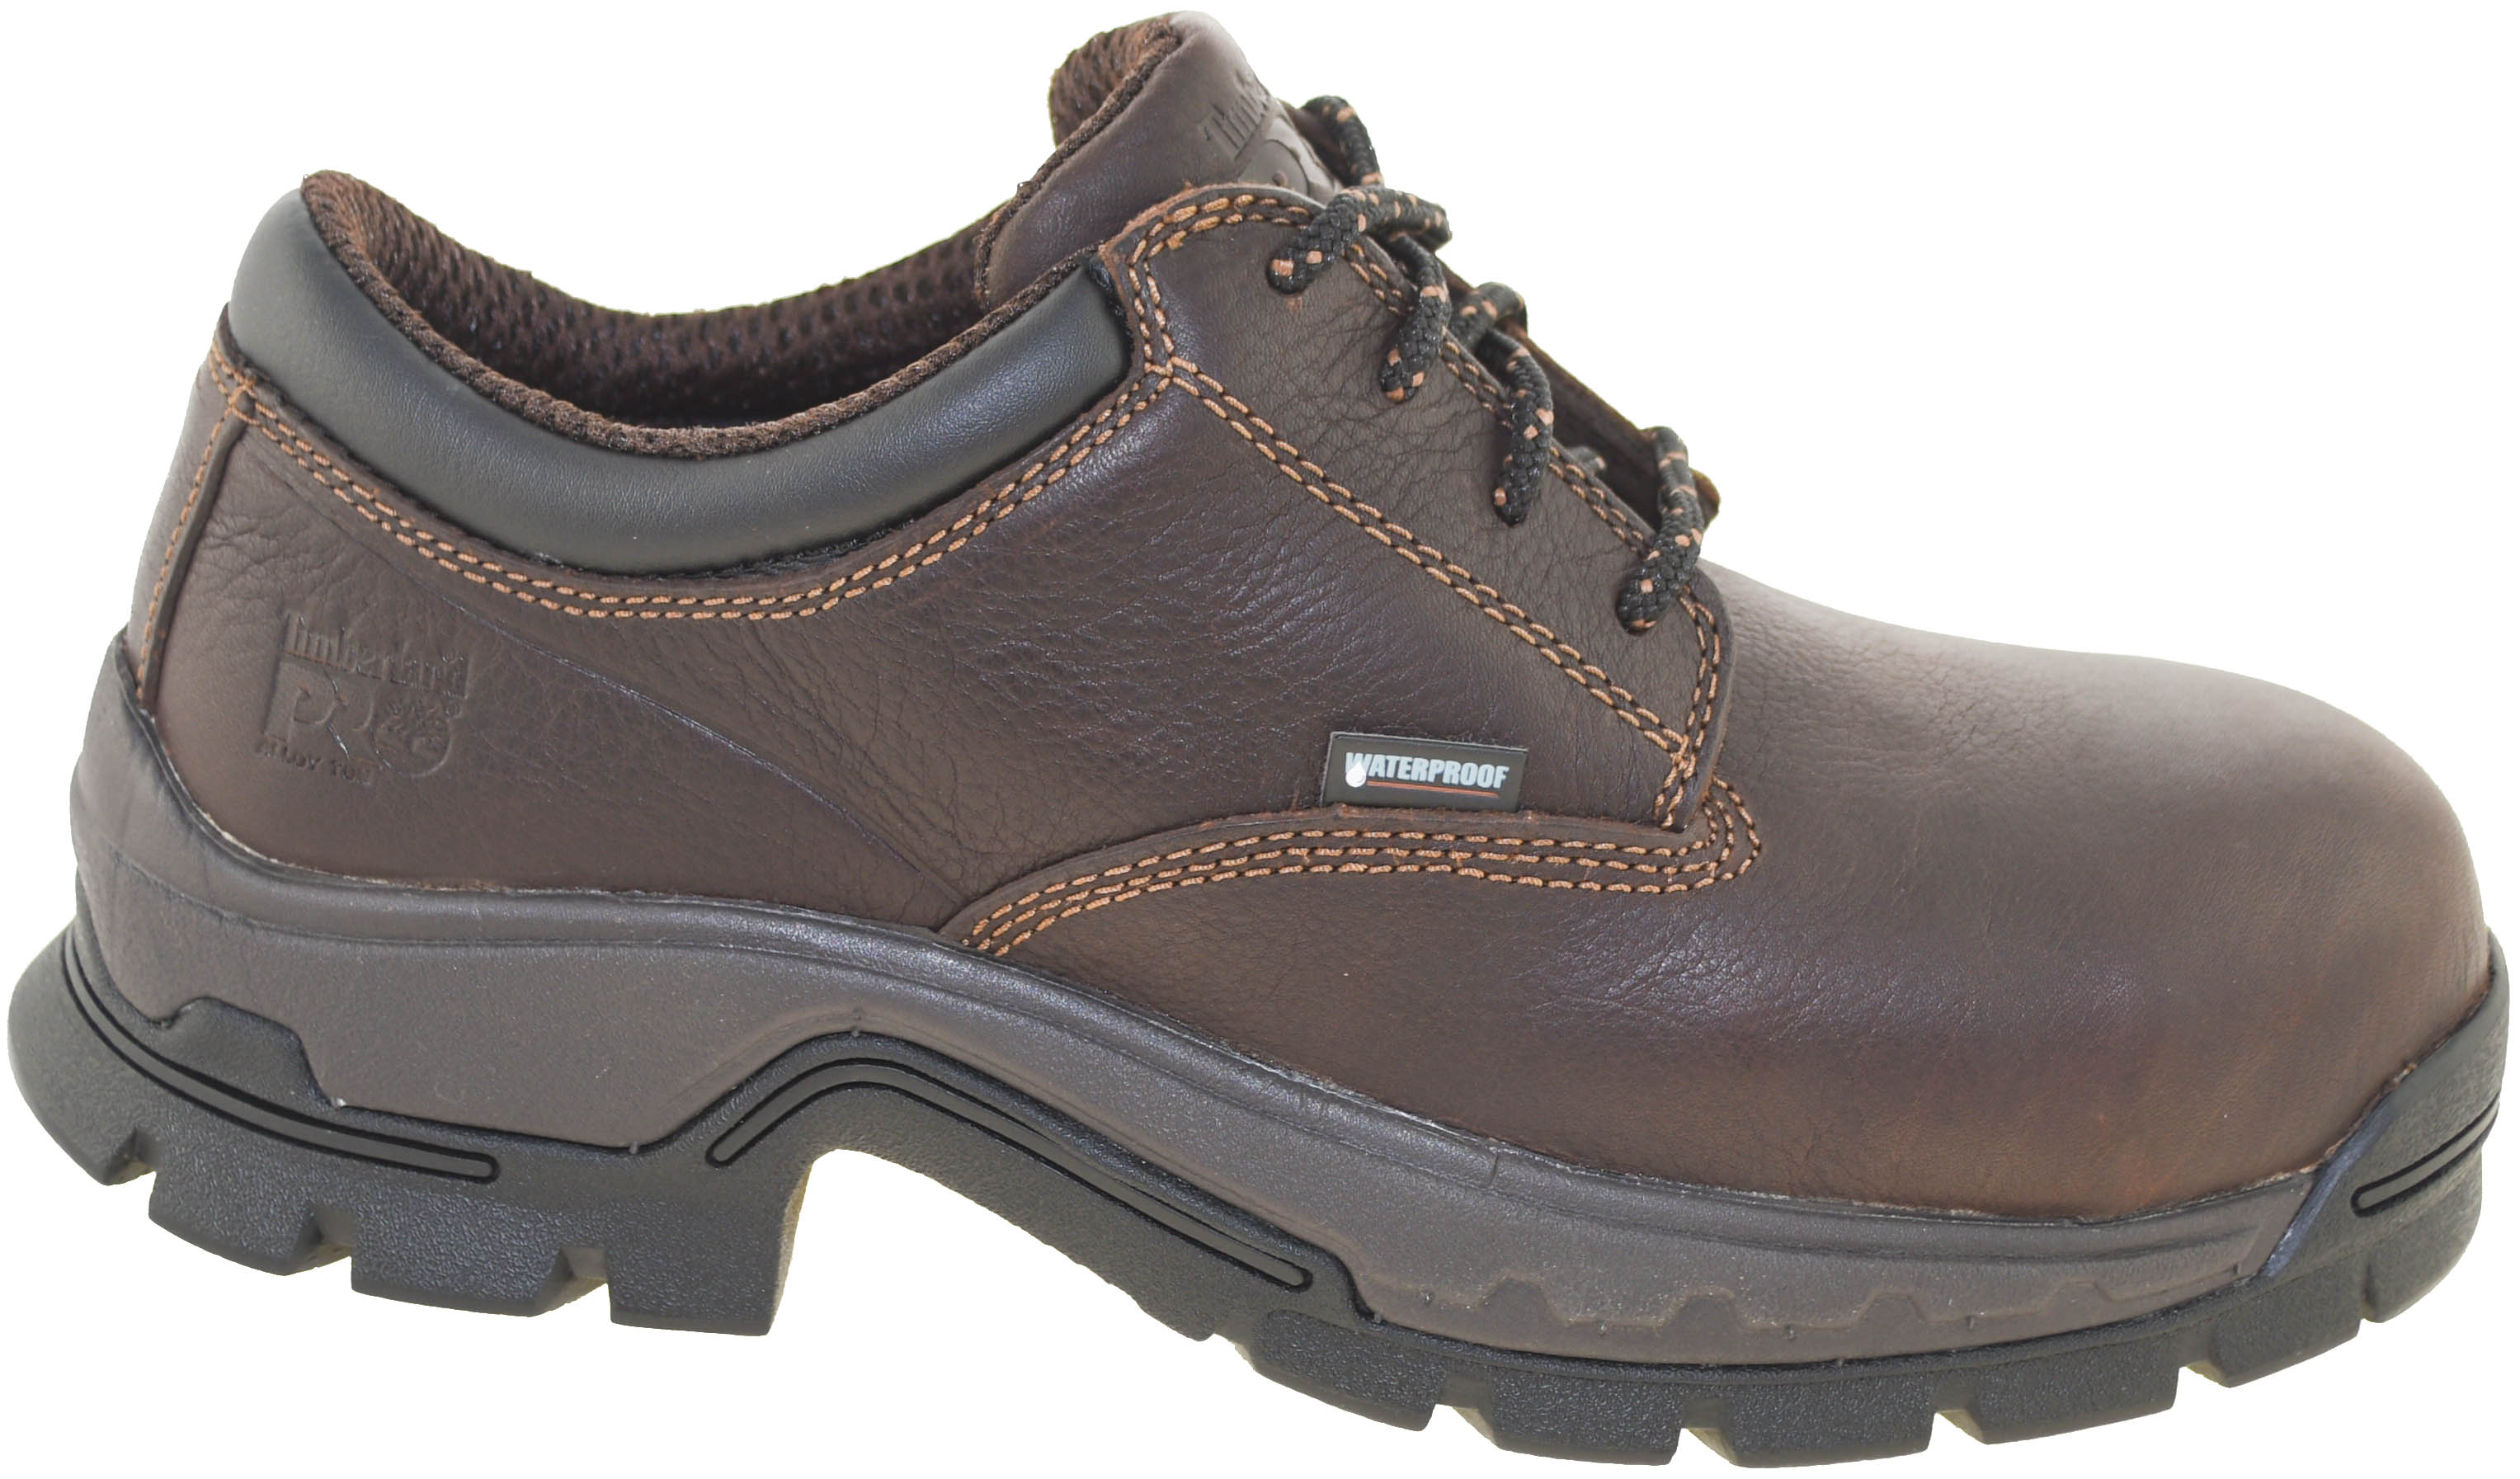 4f9200990f2 Details about Timberland Pro Men's Stockdale Alloy Safety Toe Waterproof  Oxford Brown Style A1